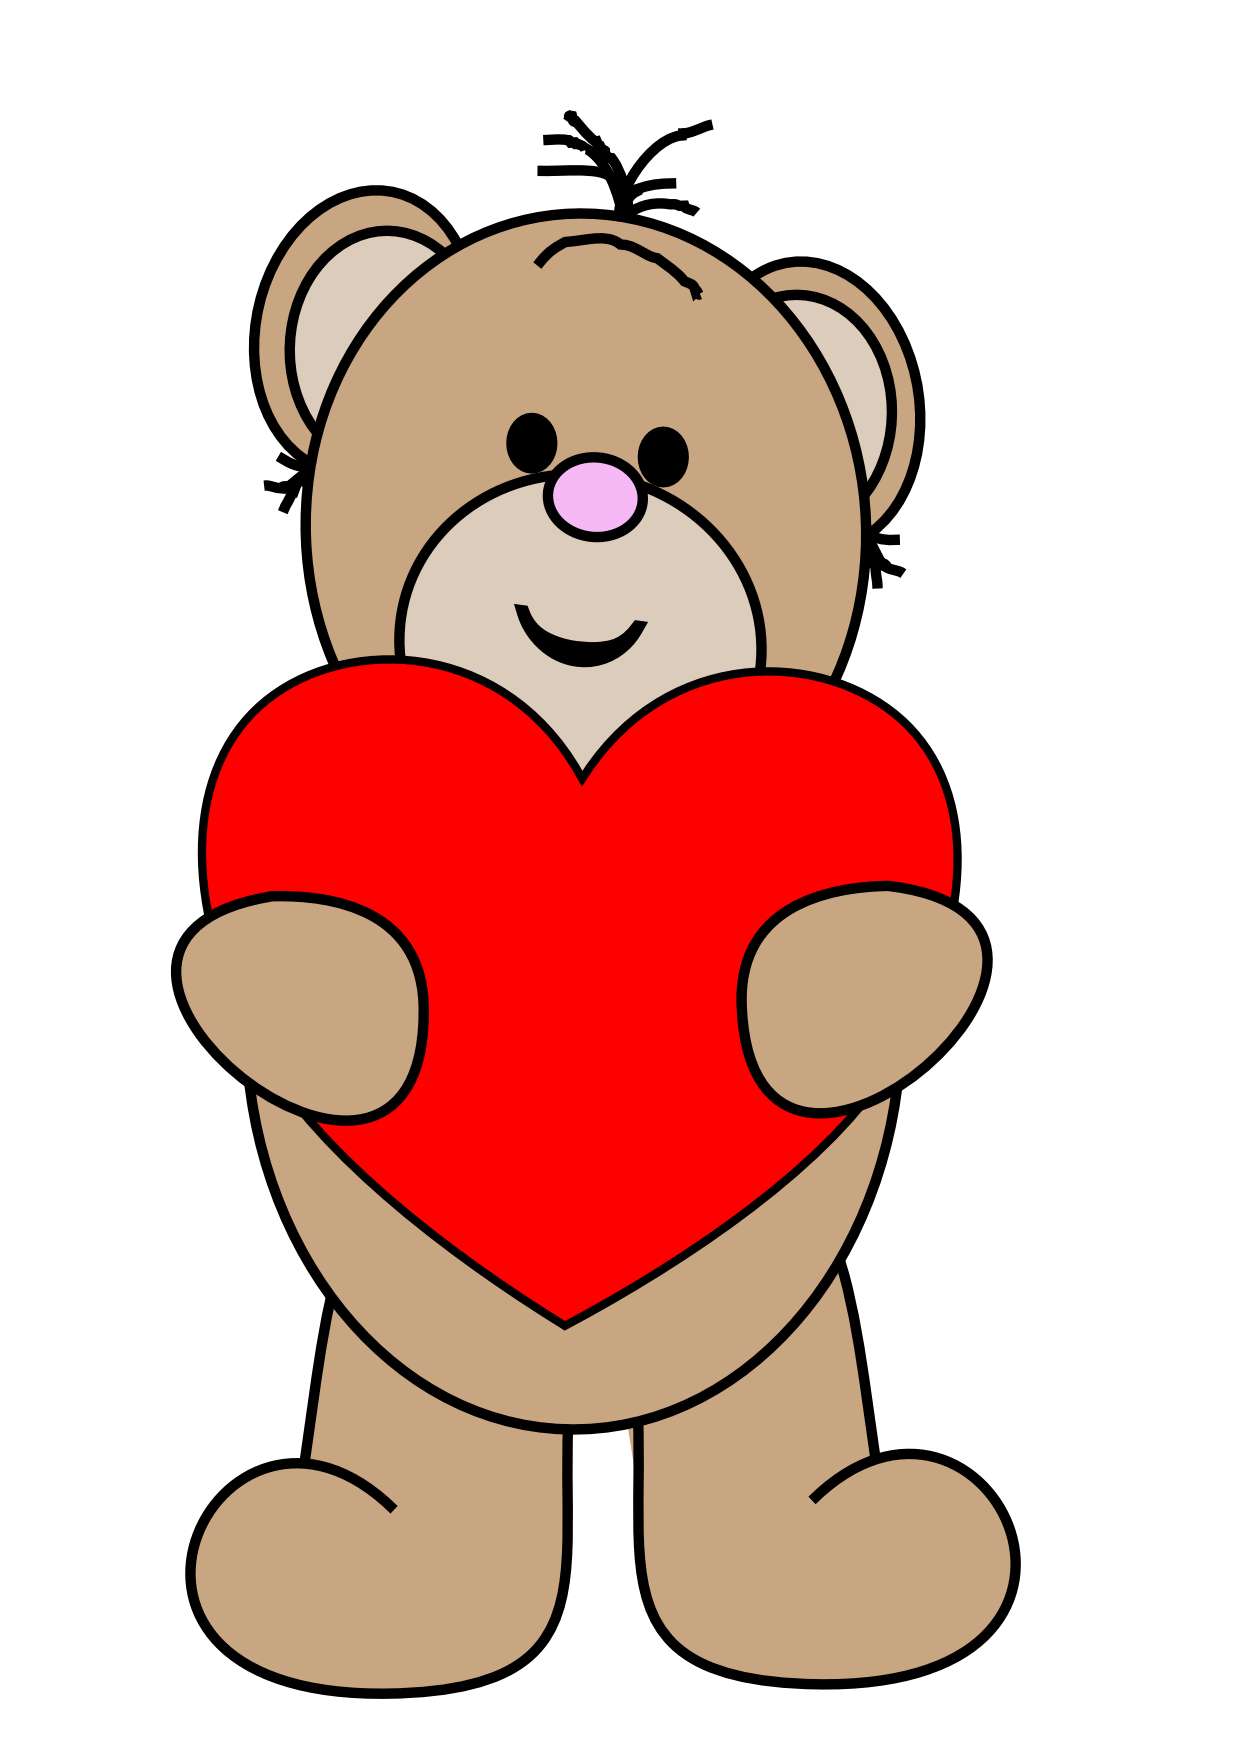 Valentine monkey at getdrawings. Clipart bear valentine's